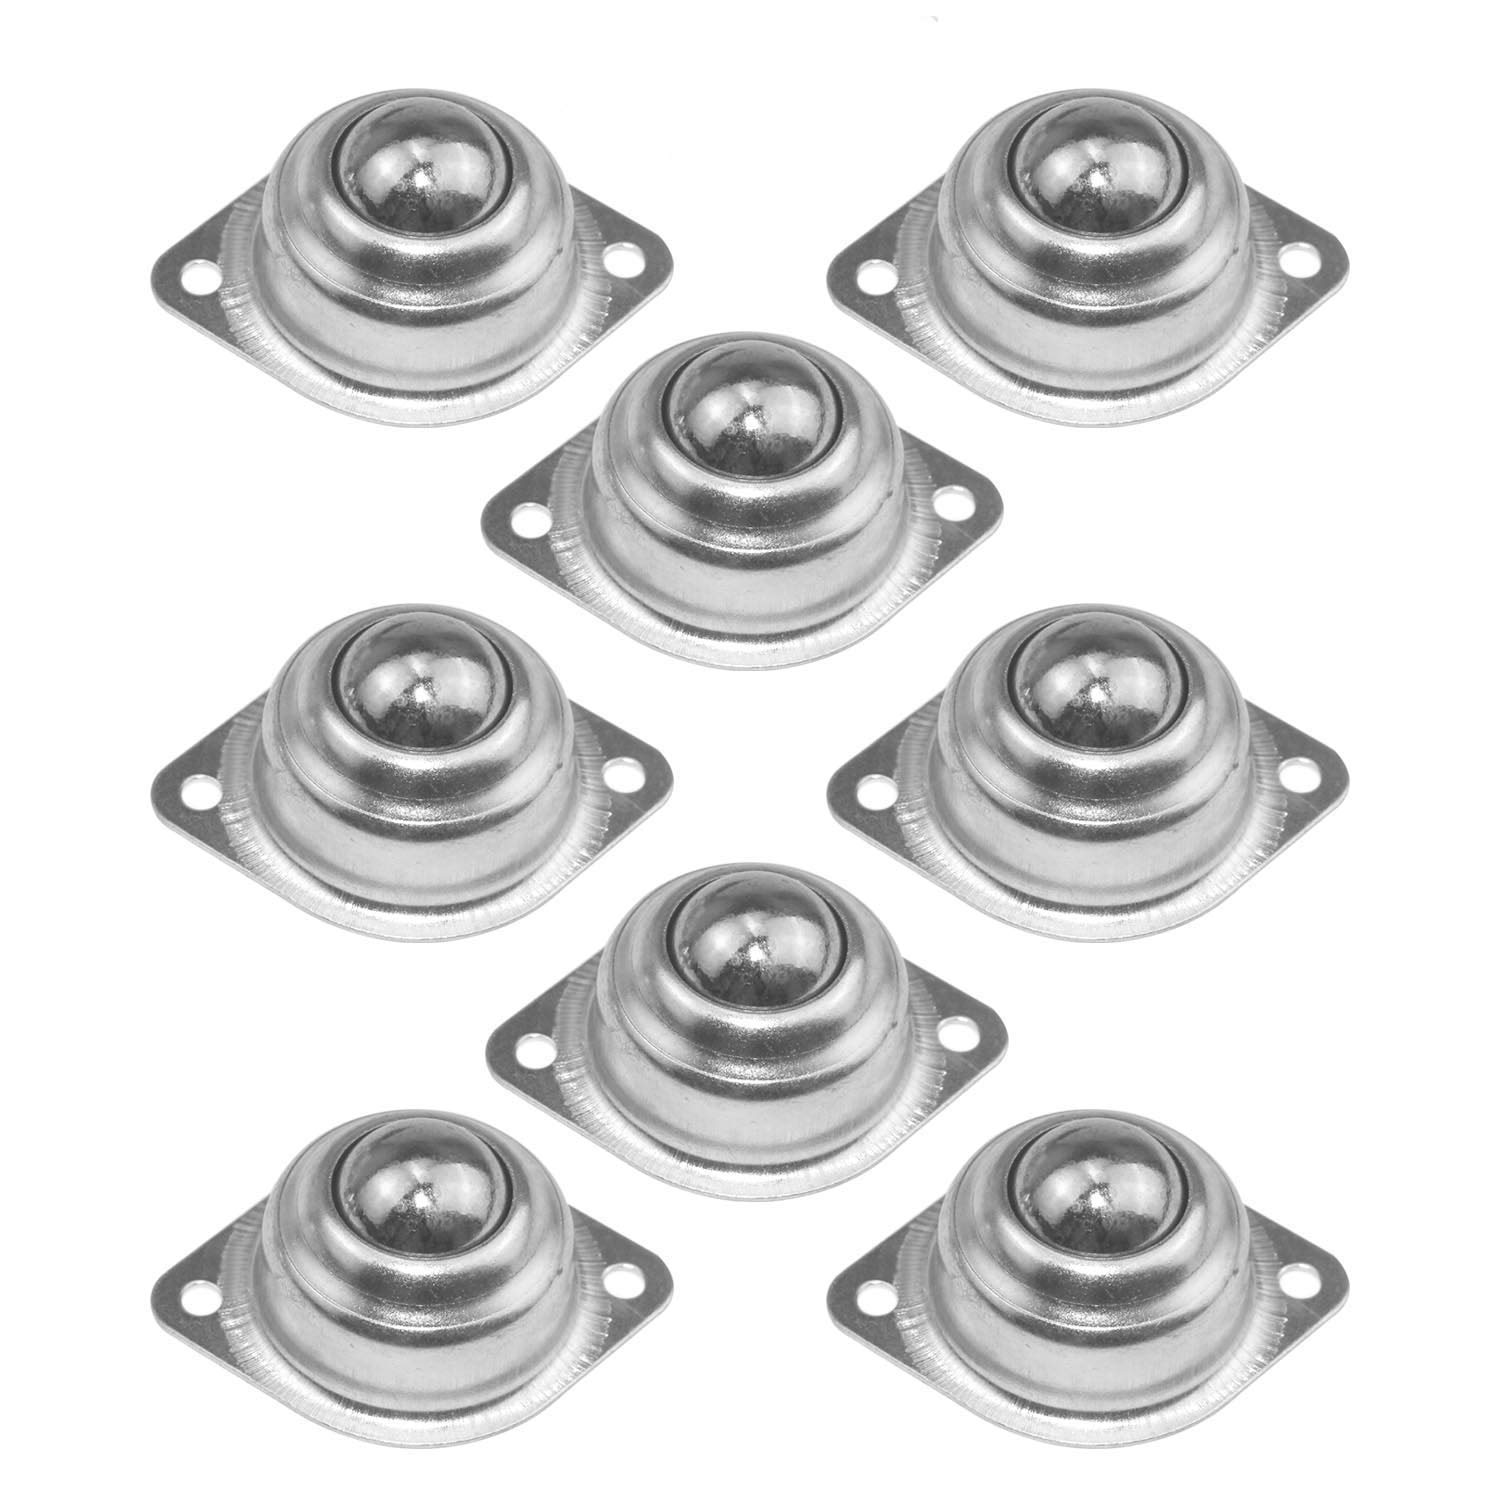 WeiMeet 8 Pieces 1 Inch Ball Transfers Universal Rolling Ball Transfer Bearings Wheel Caster Roller Ball Bearings for Conveyor Transmission Furniture